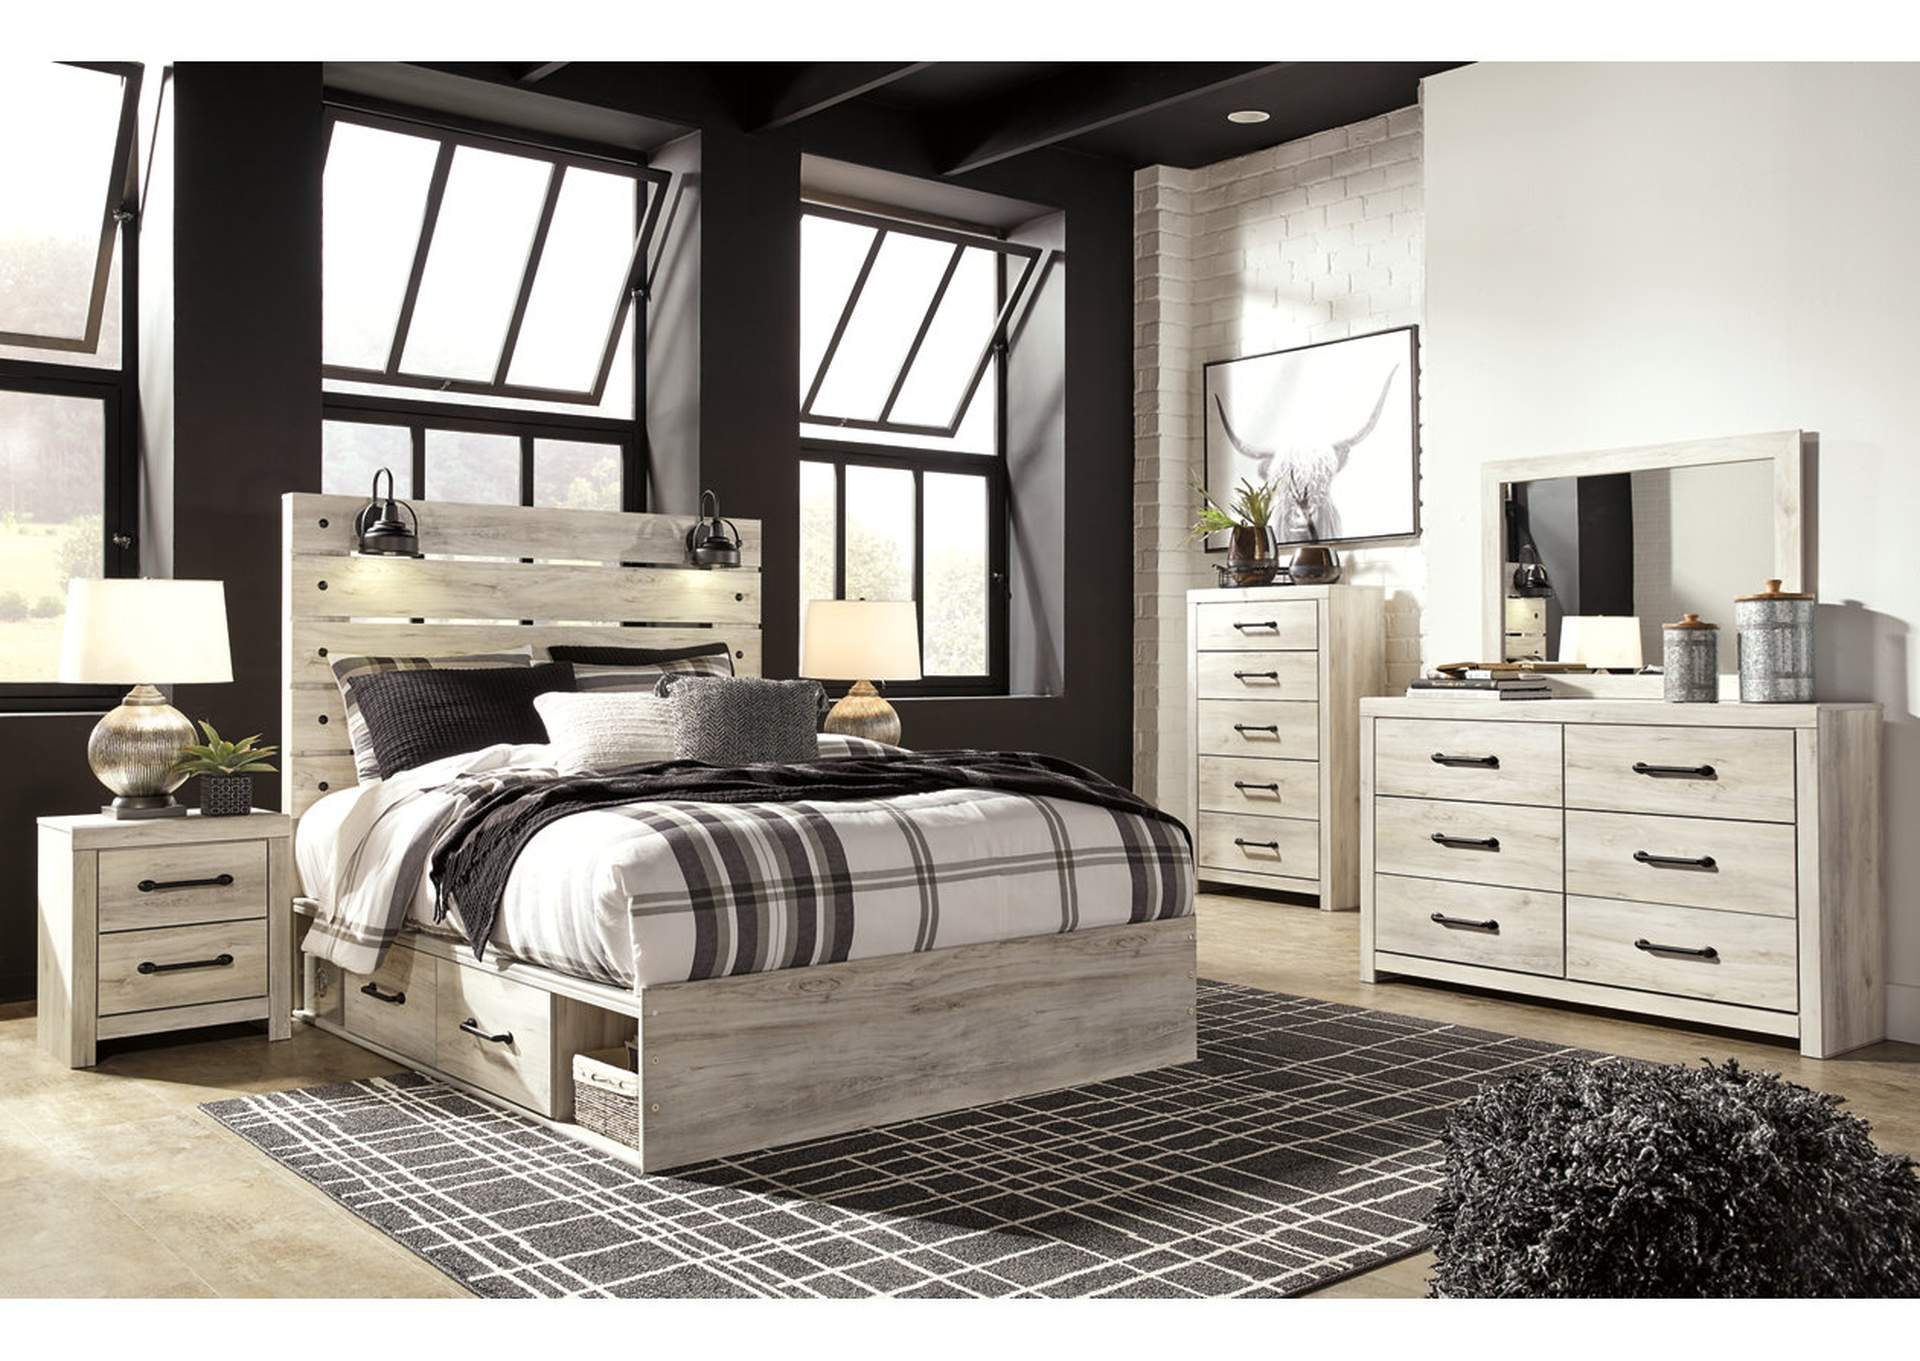 Cambeck Queen Panel Bed with 4 Underbed Storage Drawers,Signature Design By Ashley